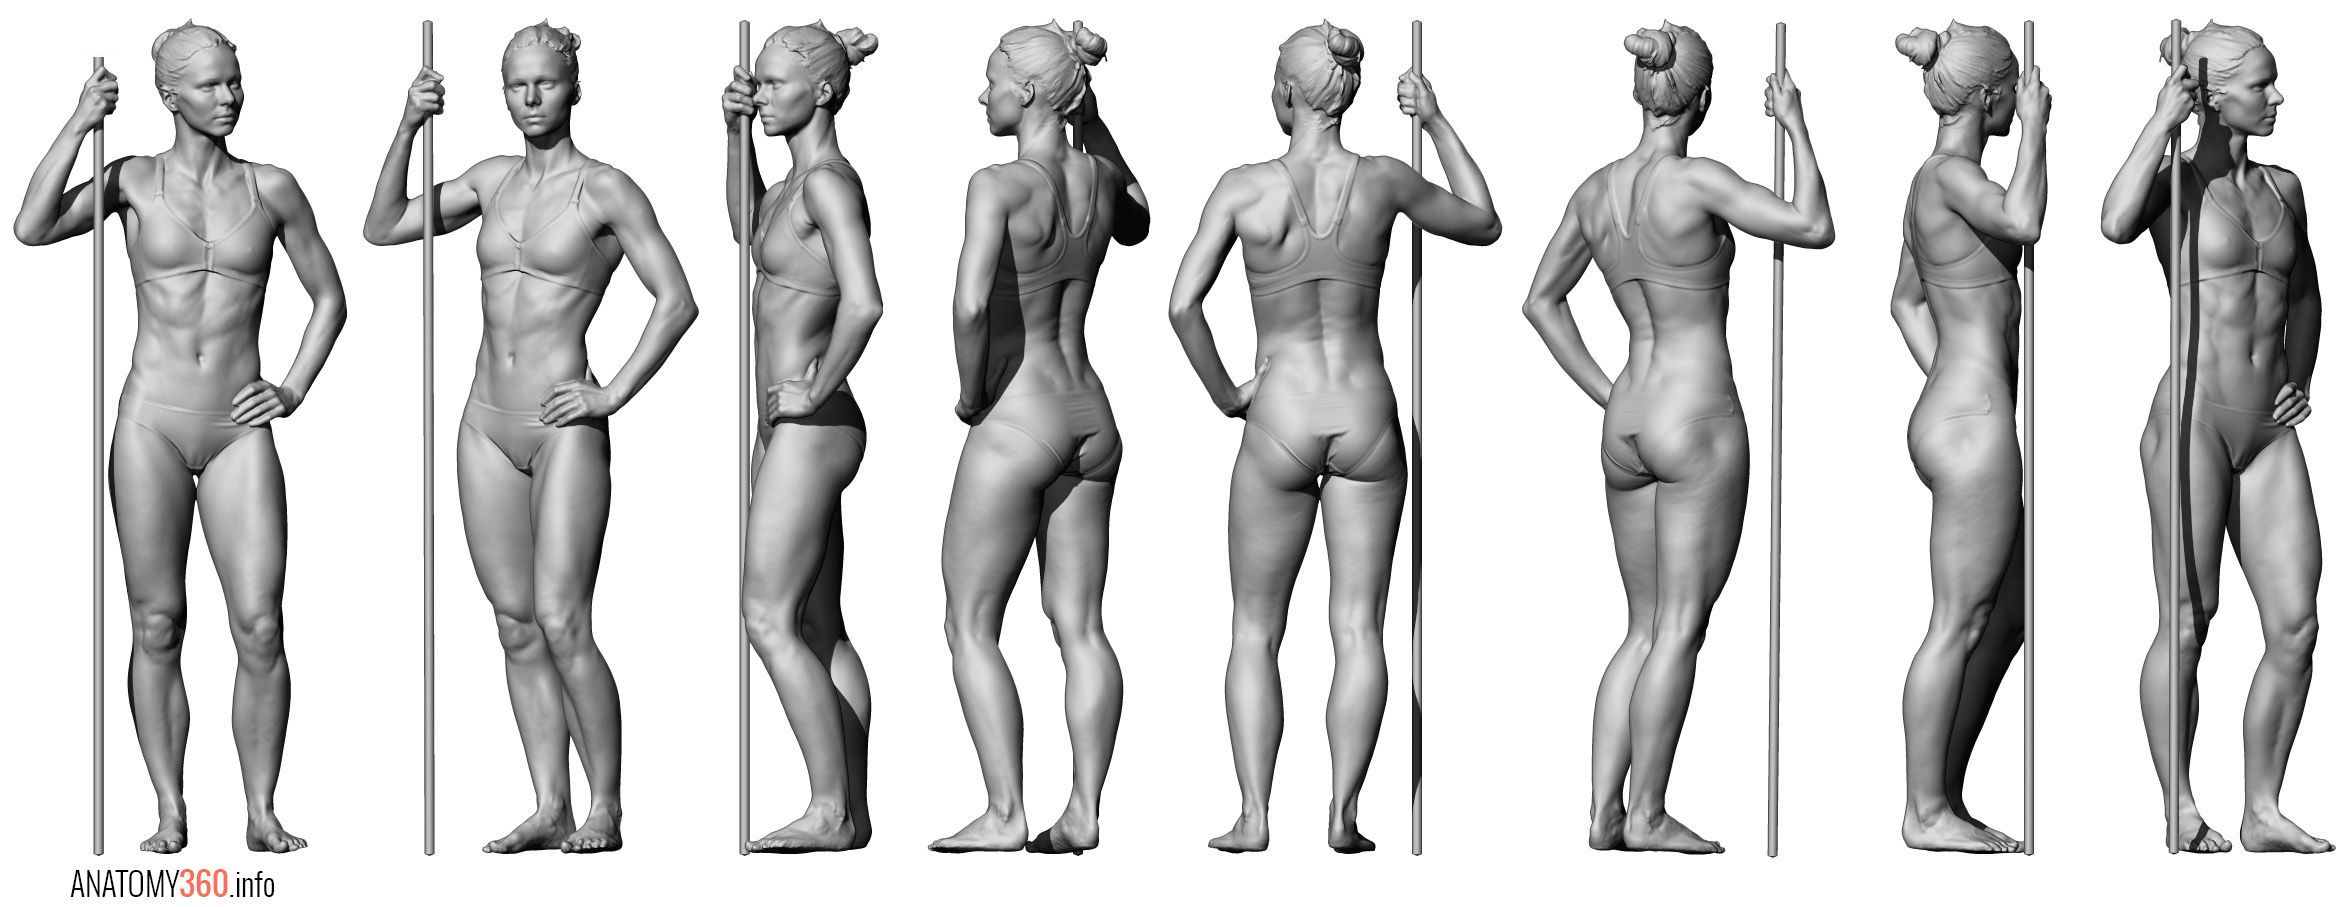 Pin By Shoyih 5 On Pose Pinterest Anatomy Body Reference And